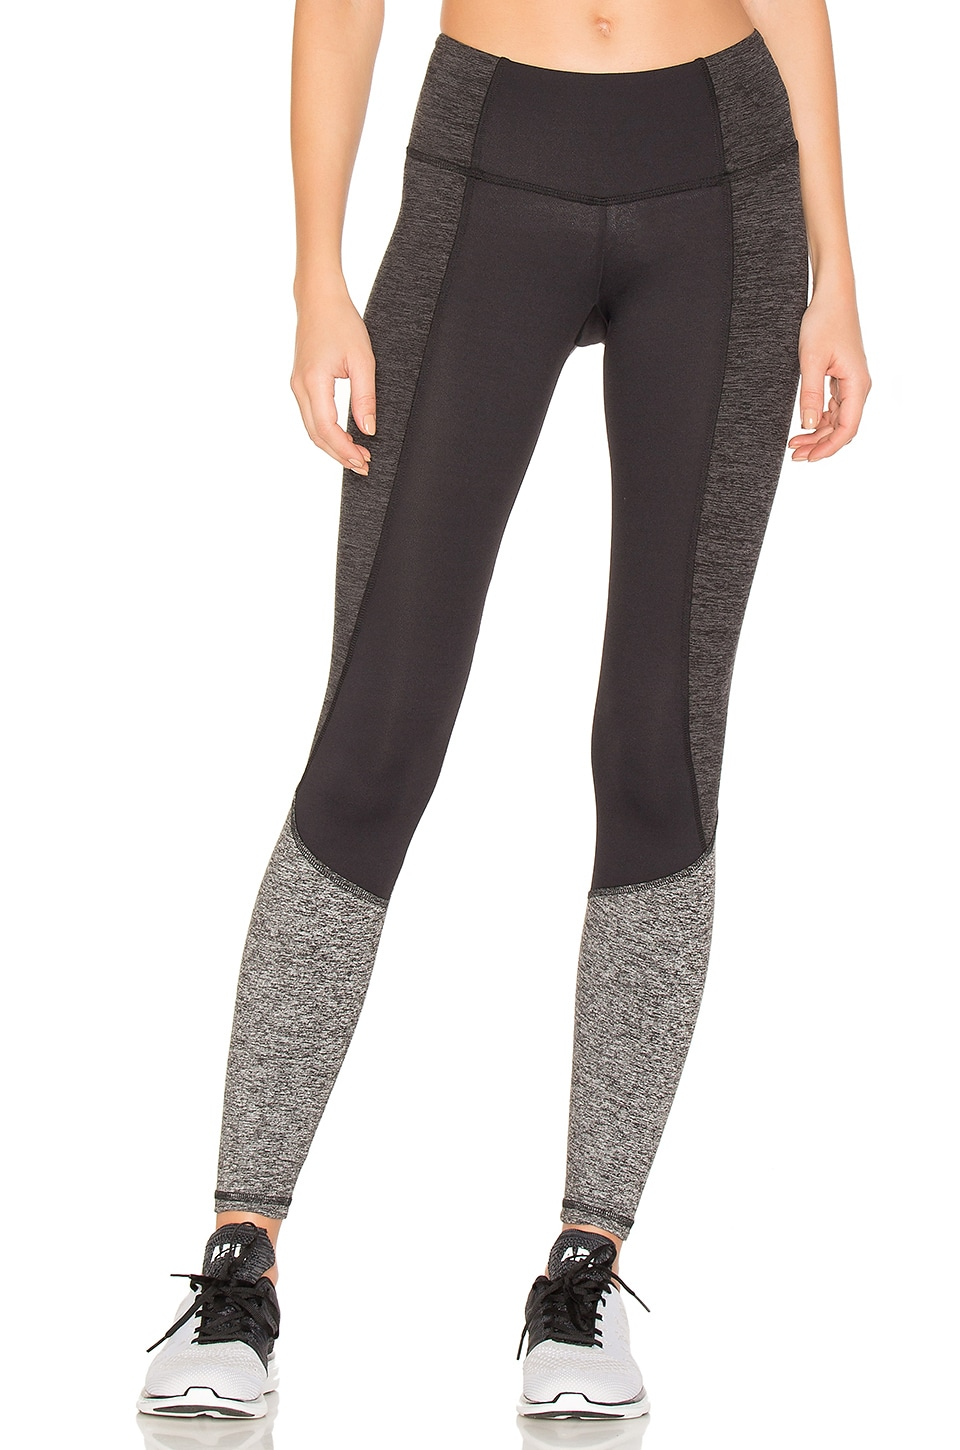 The Ryder Legging by Strut-This